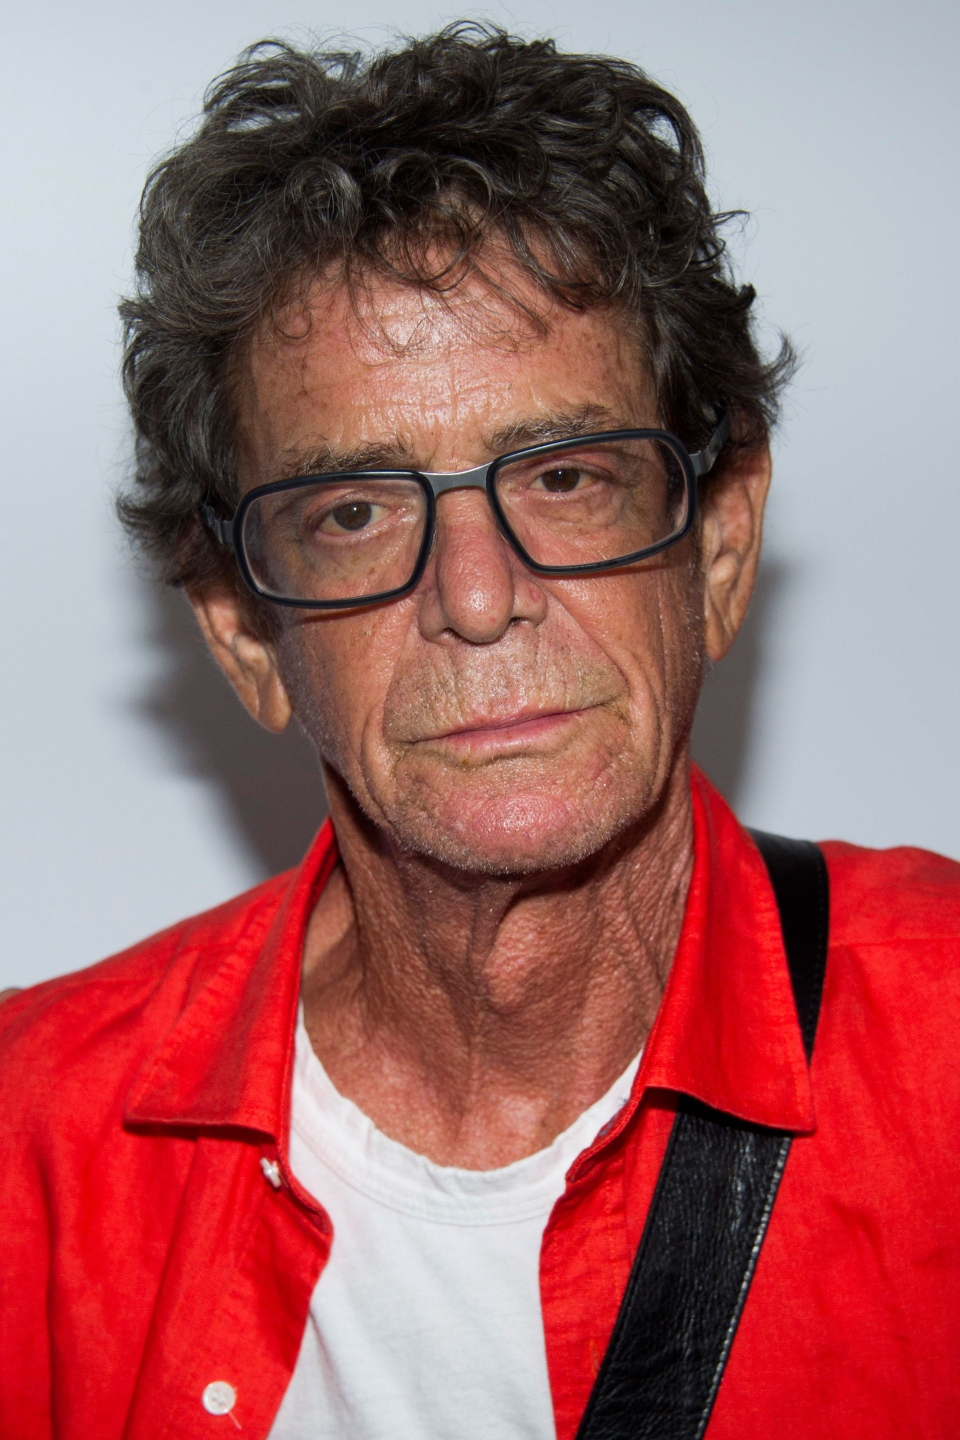 Lou Reed attends the 'Breaking Bad' final episodes premiere hosted by the Film Society of Lincoln Center in New York, Wednesday, July 31, 2013. (Charles Sykes / Invision)